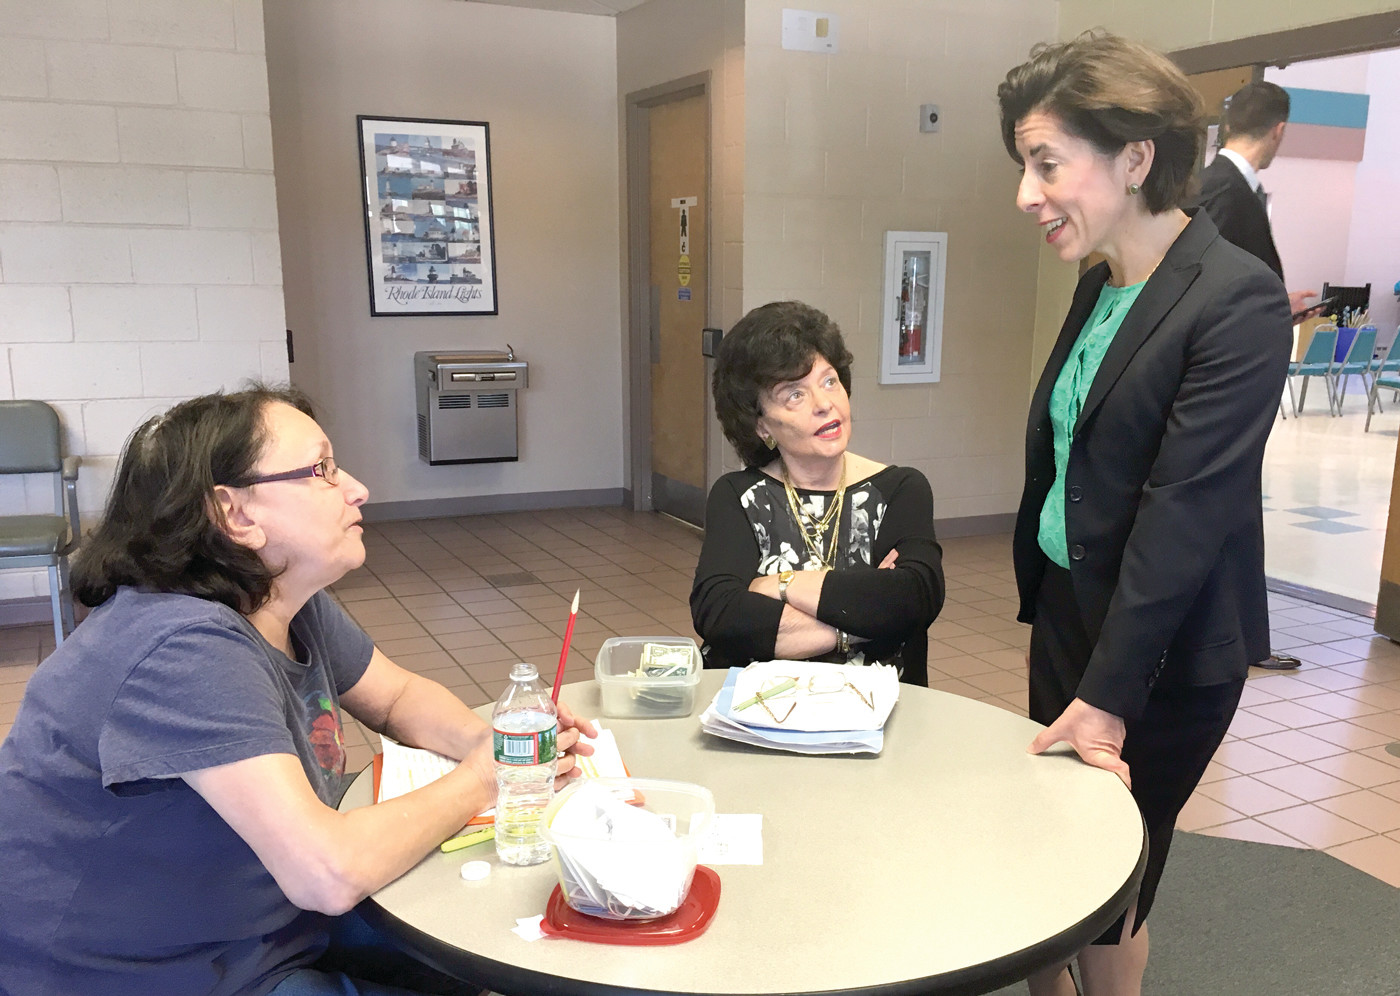 HIGH LOW JACK: Governor Gina Raimondo talks with Joyce Wawryk and Kathy Dermo as they play a card game.